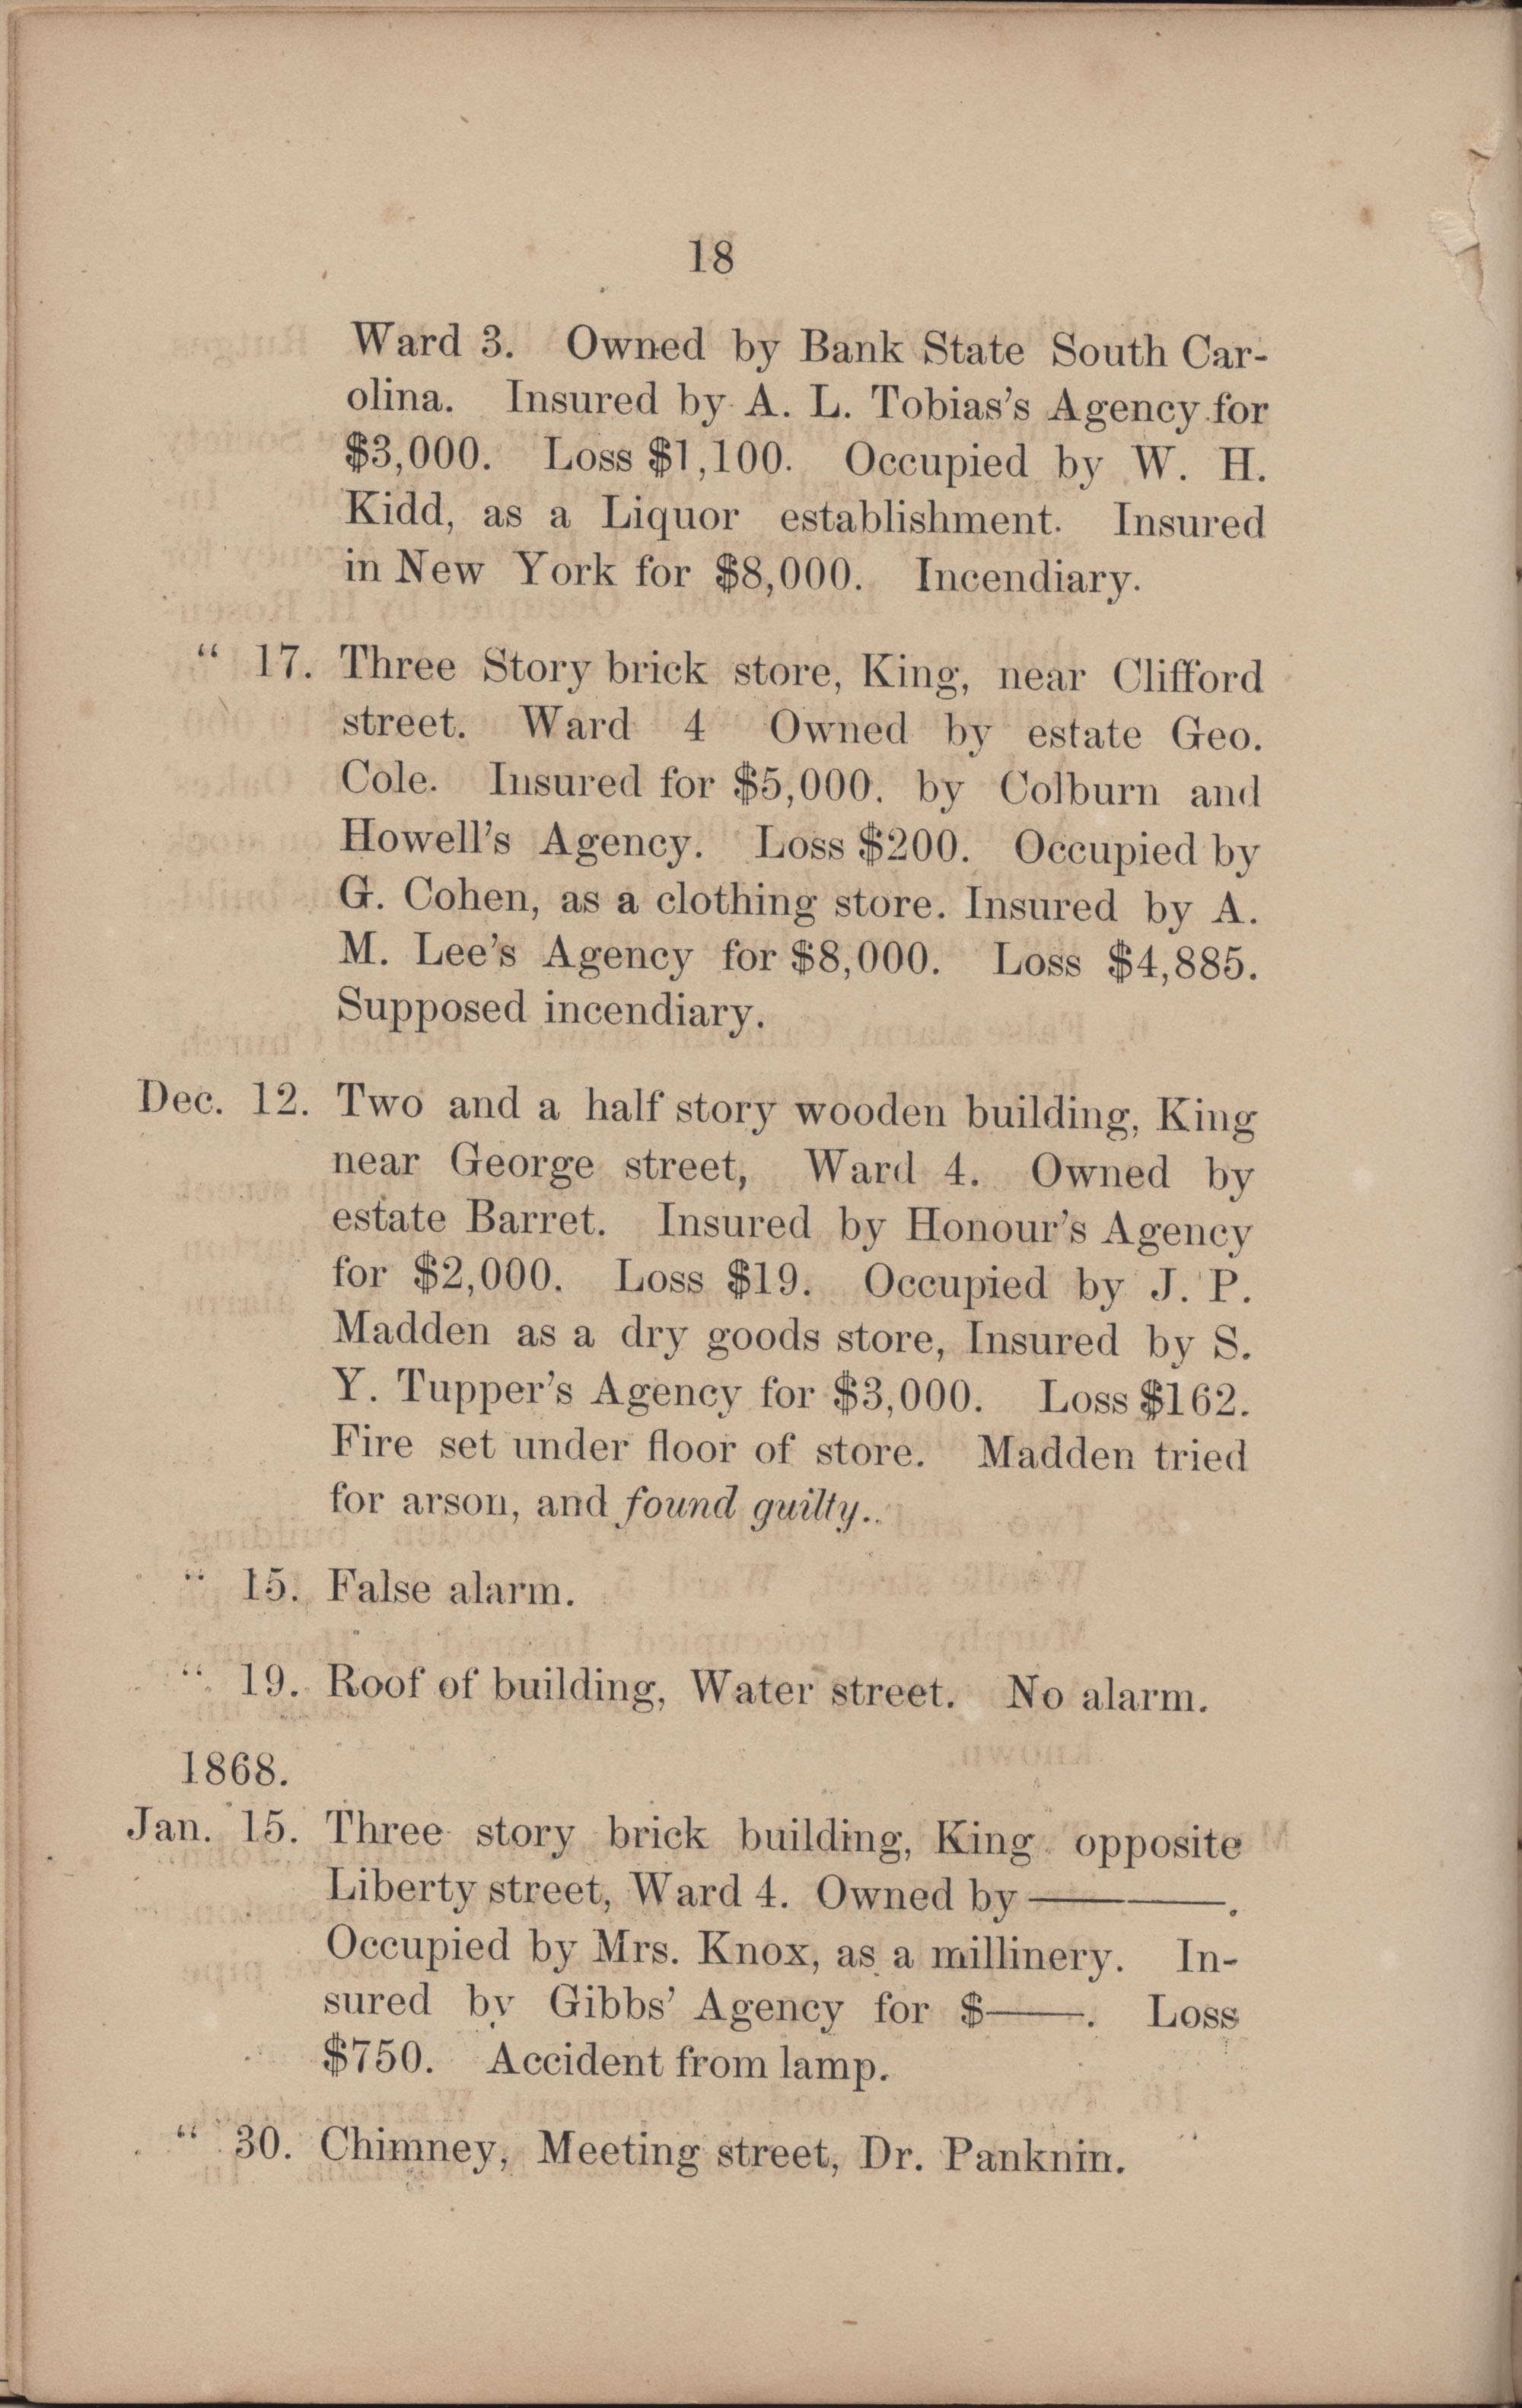 Annual Report of the Chief of the Fire Department of the City of Charleston, page 196